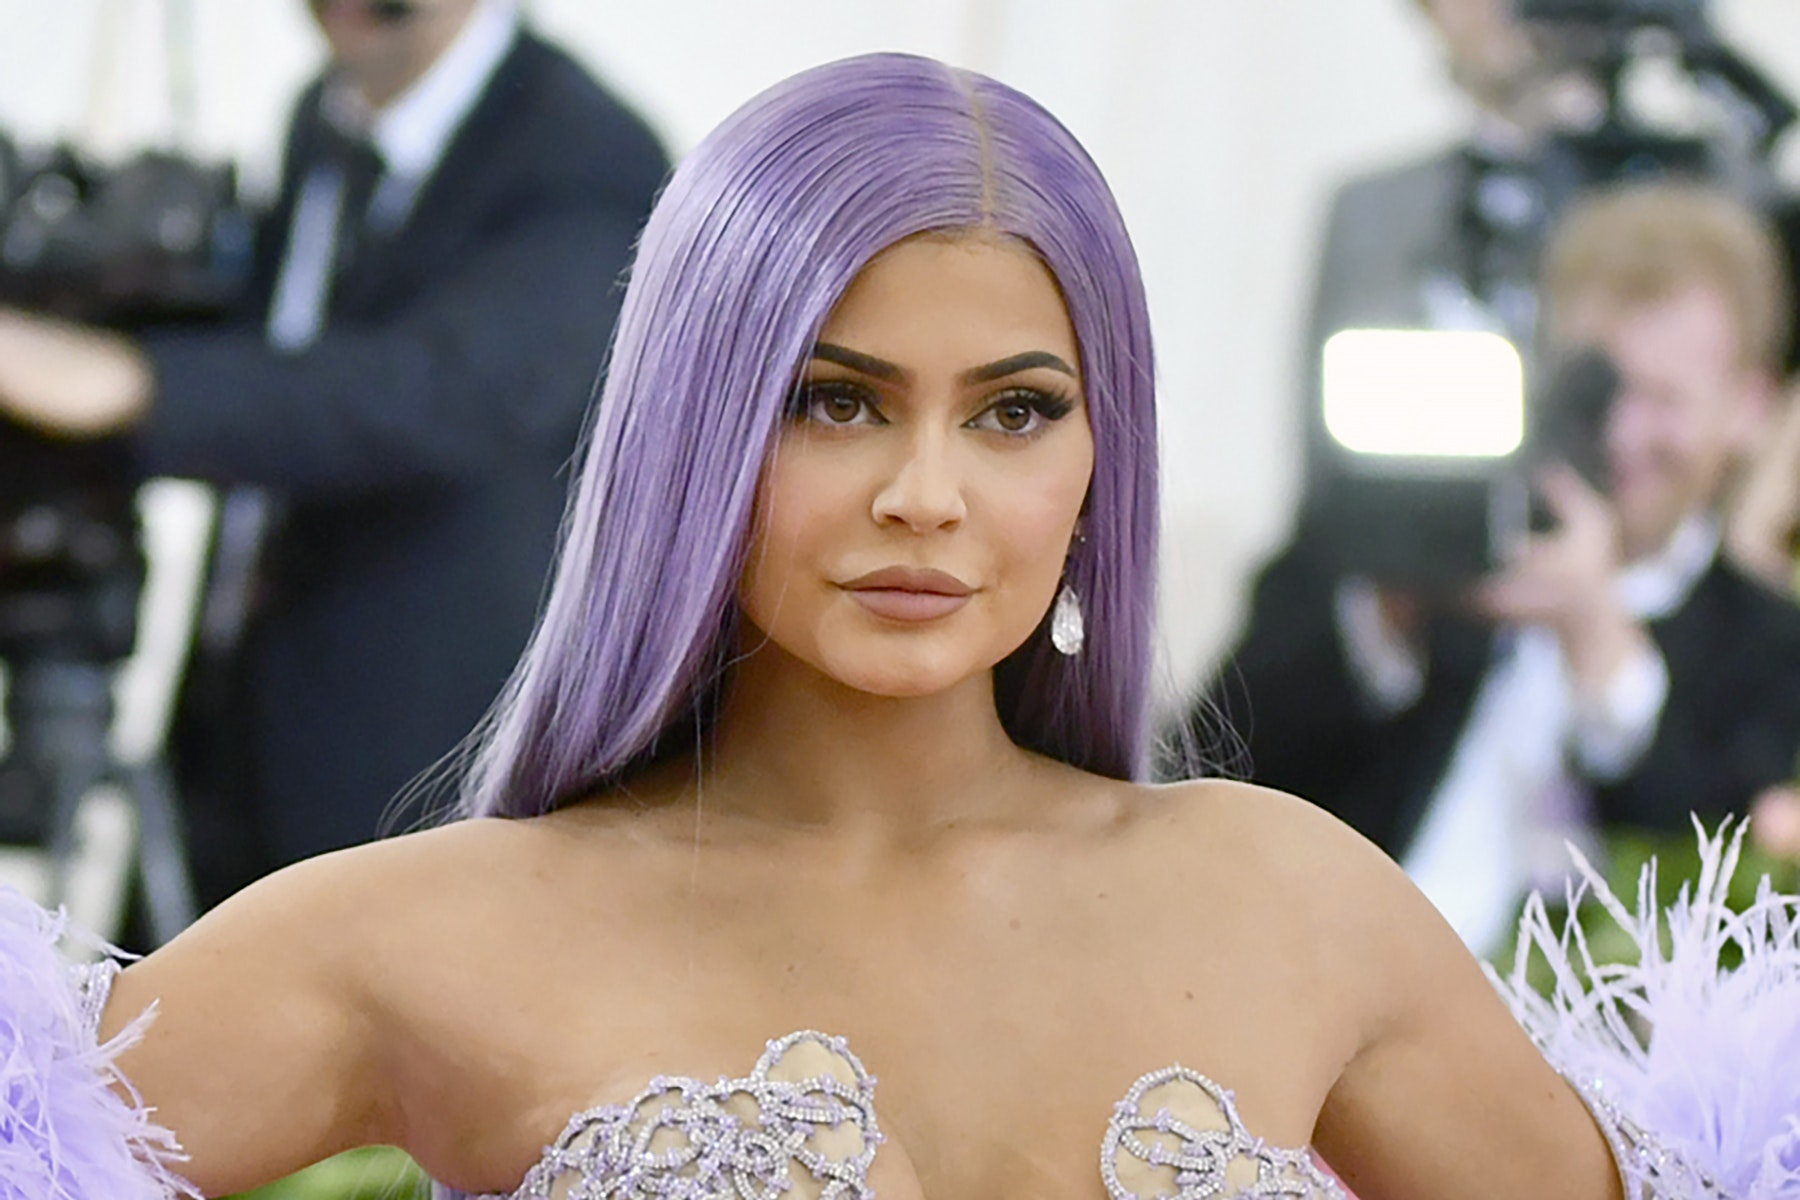 Kylie Jenner sells majority stake in her cosmetics business - Dudley News